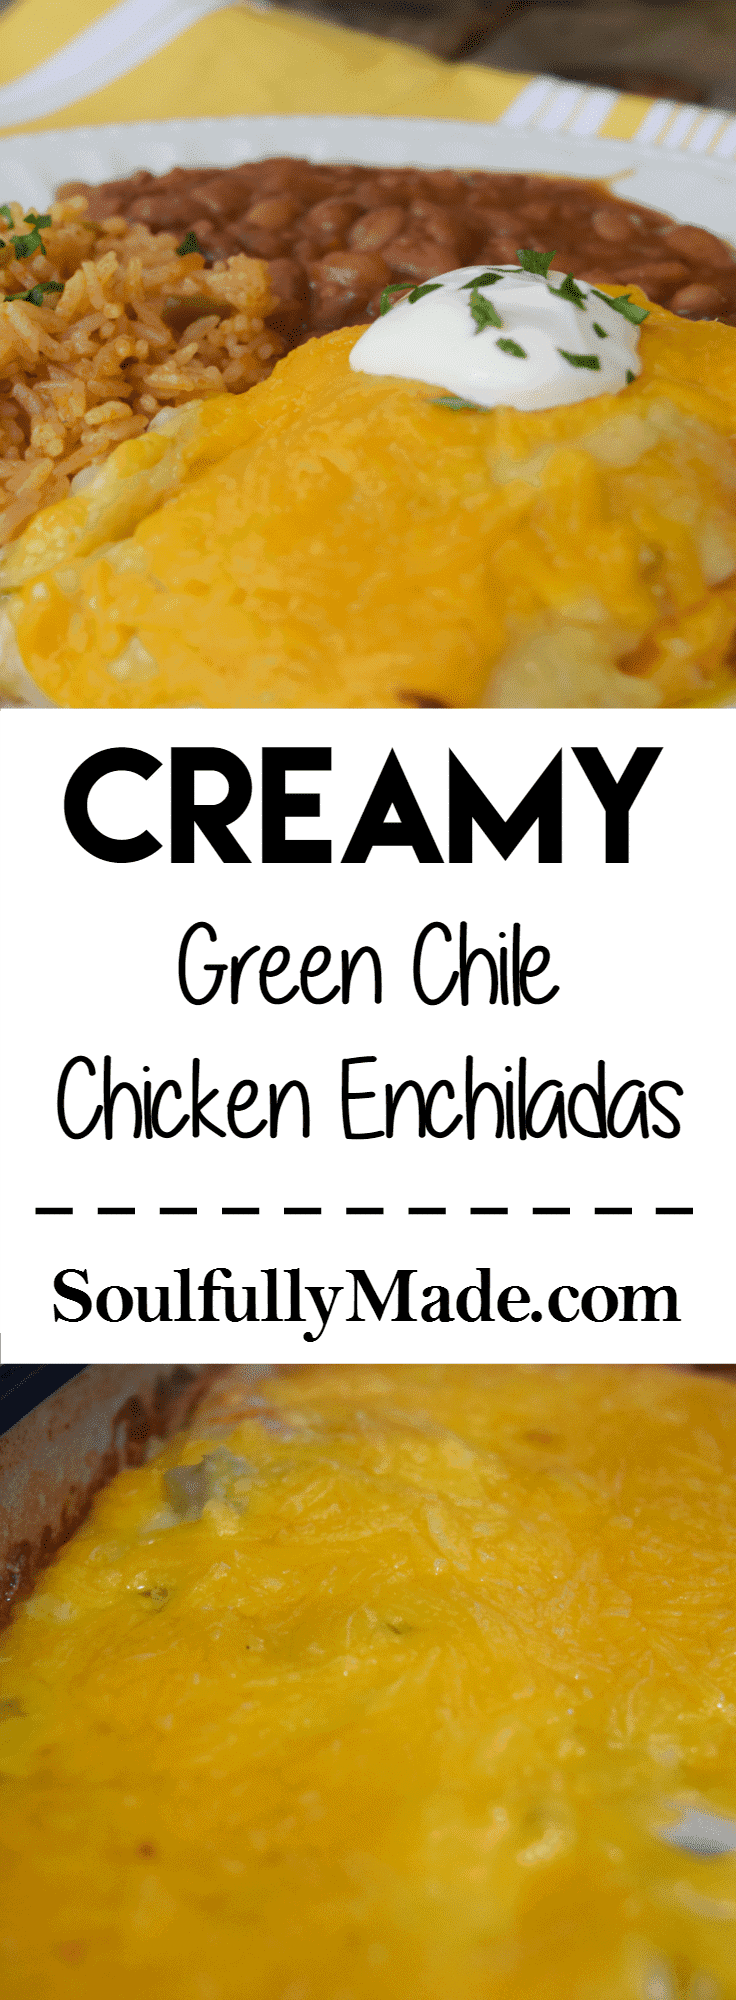 Creamy Green Chile Chicken Enchiladas.